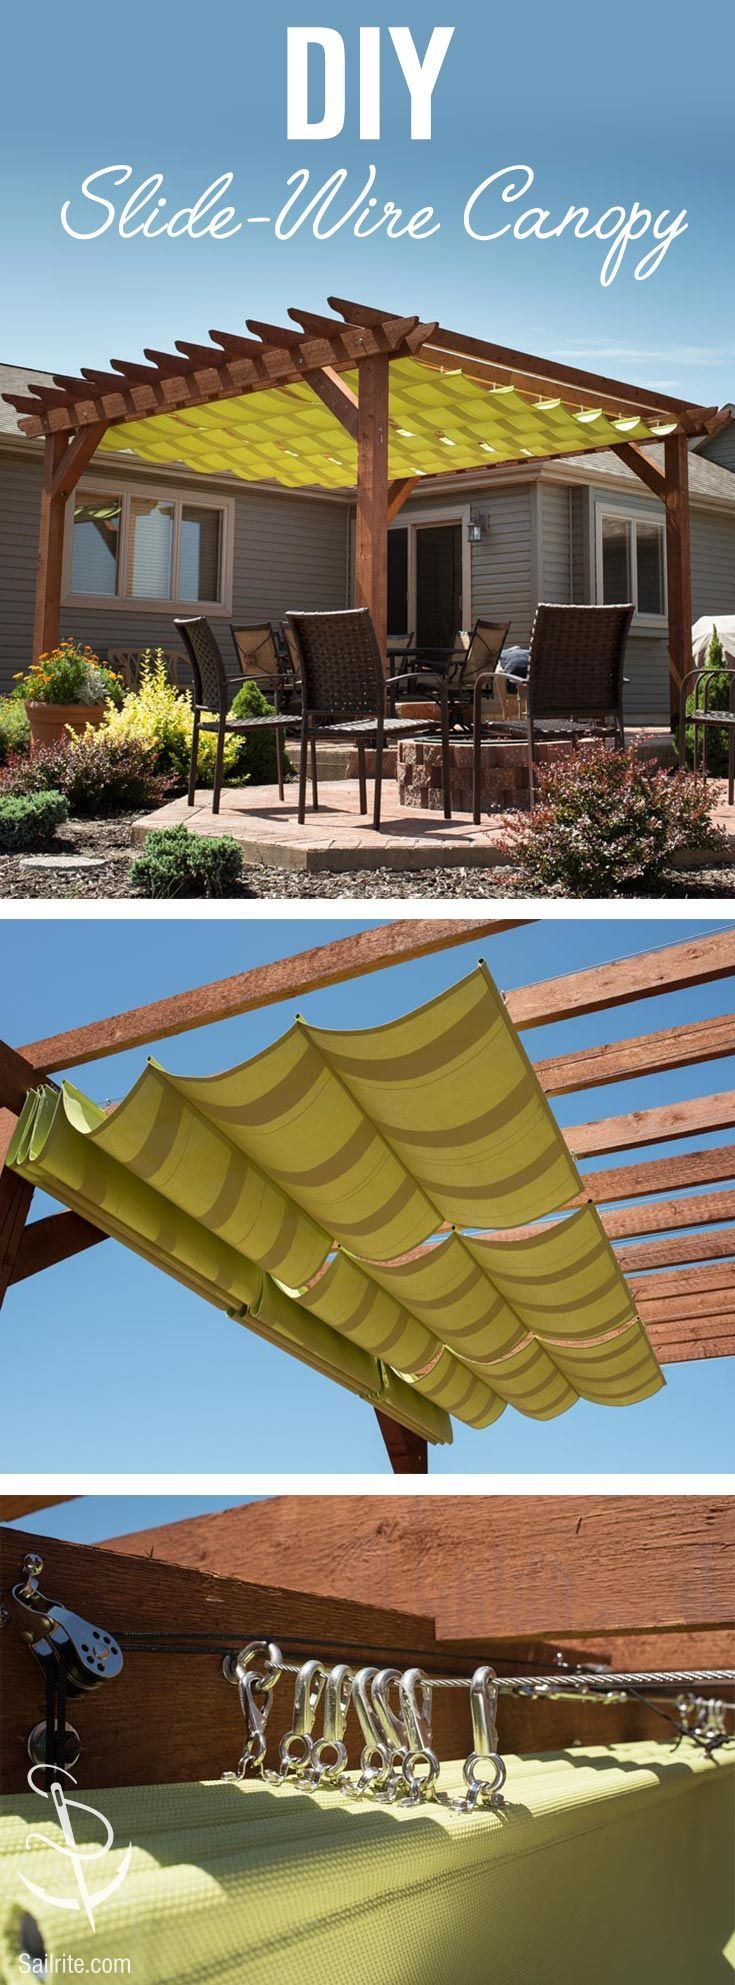 Learn How To Make A Slide Wire Canopy With Free How To Video Instructions From Sailrite Backyard Pergola Slide Wire Canopy